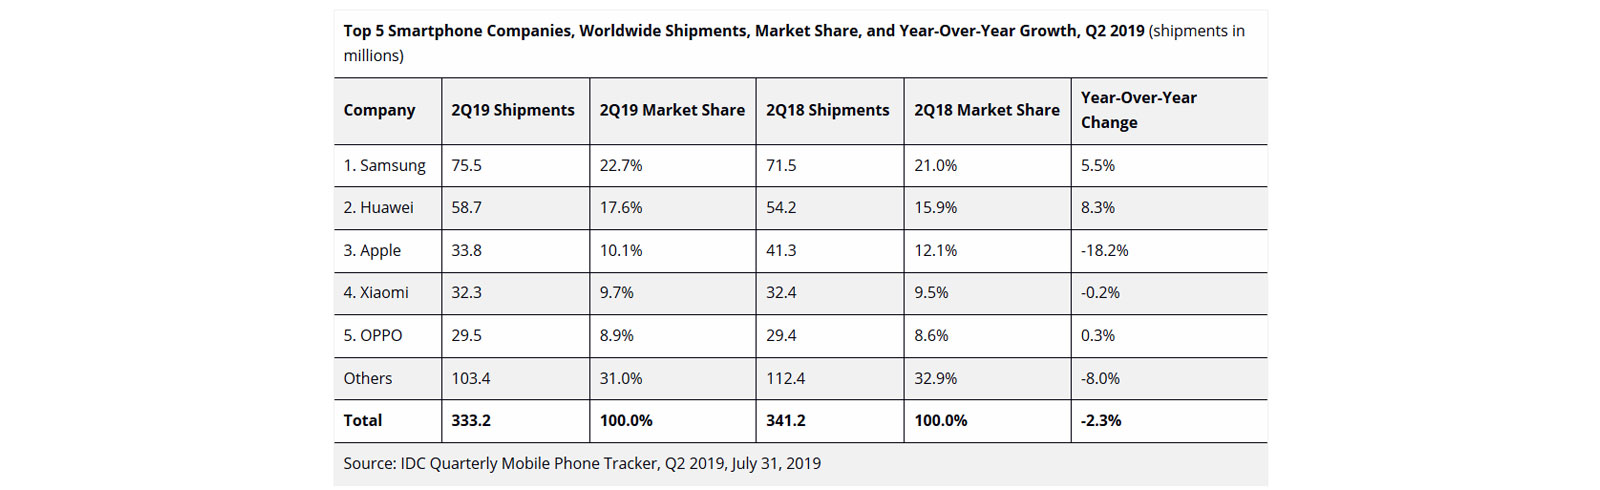 Worldwide smartphone shipments decline by 2.3% YoY in Q2 2019, according to IDC